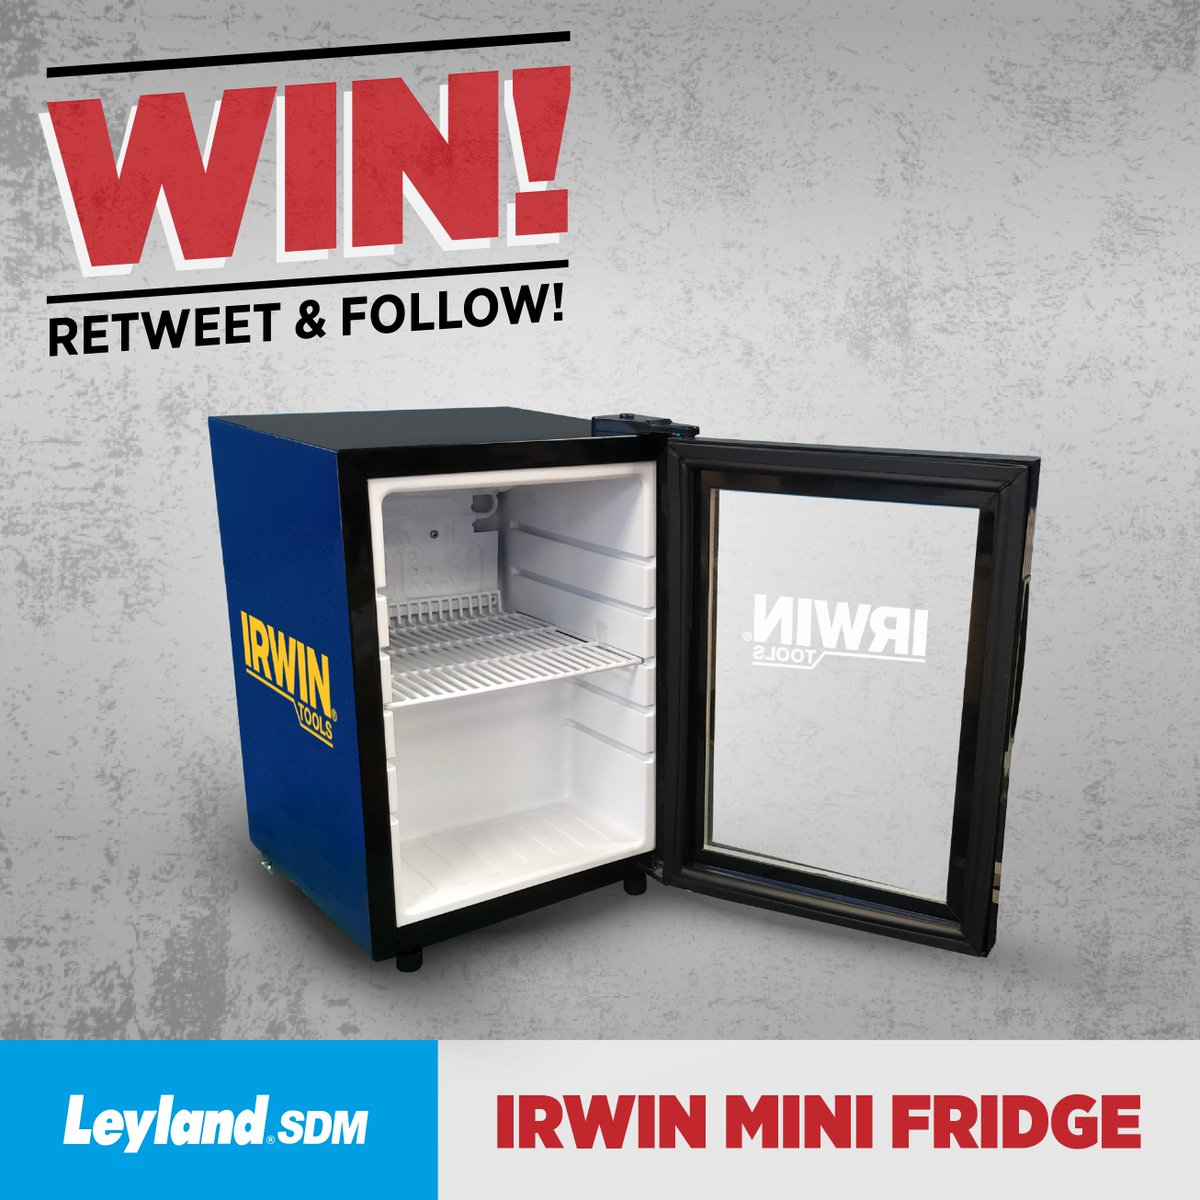 RT &amp; follow us for your chance to win this @IRWINtoolsUK mini fridge! Ends today at 5pm! #FreebieFriday #Giveaway #Win #RT #Prize #DIY #Tools #Xmas<br>http://pic.twitter.com/6Oj2TexRlM